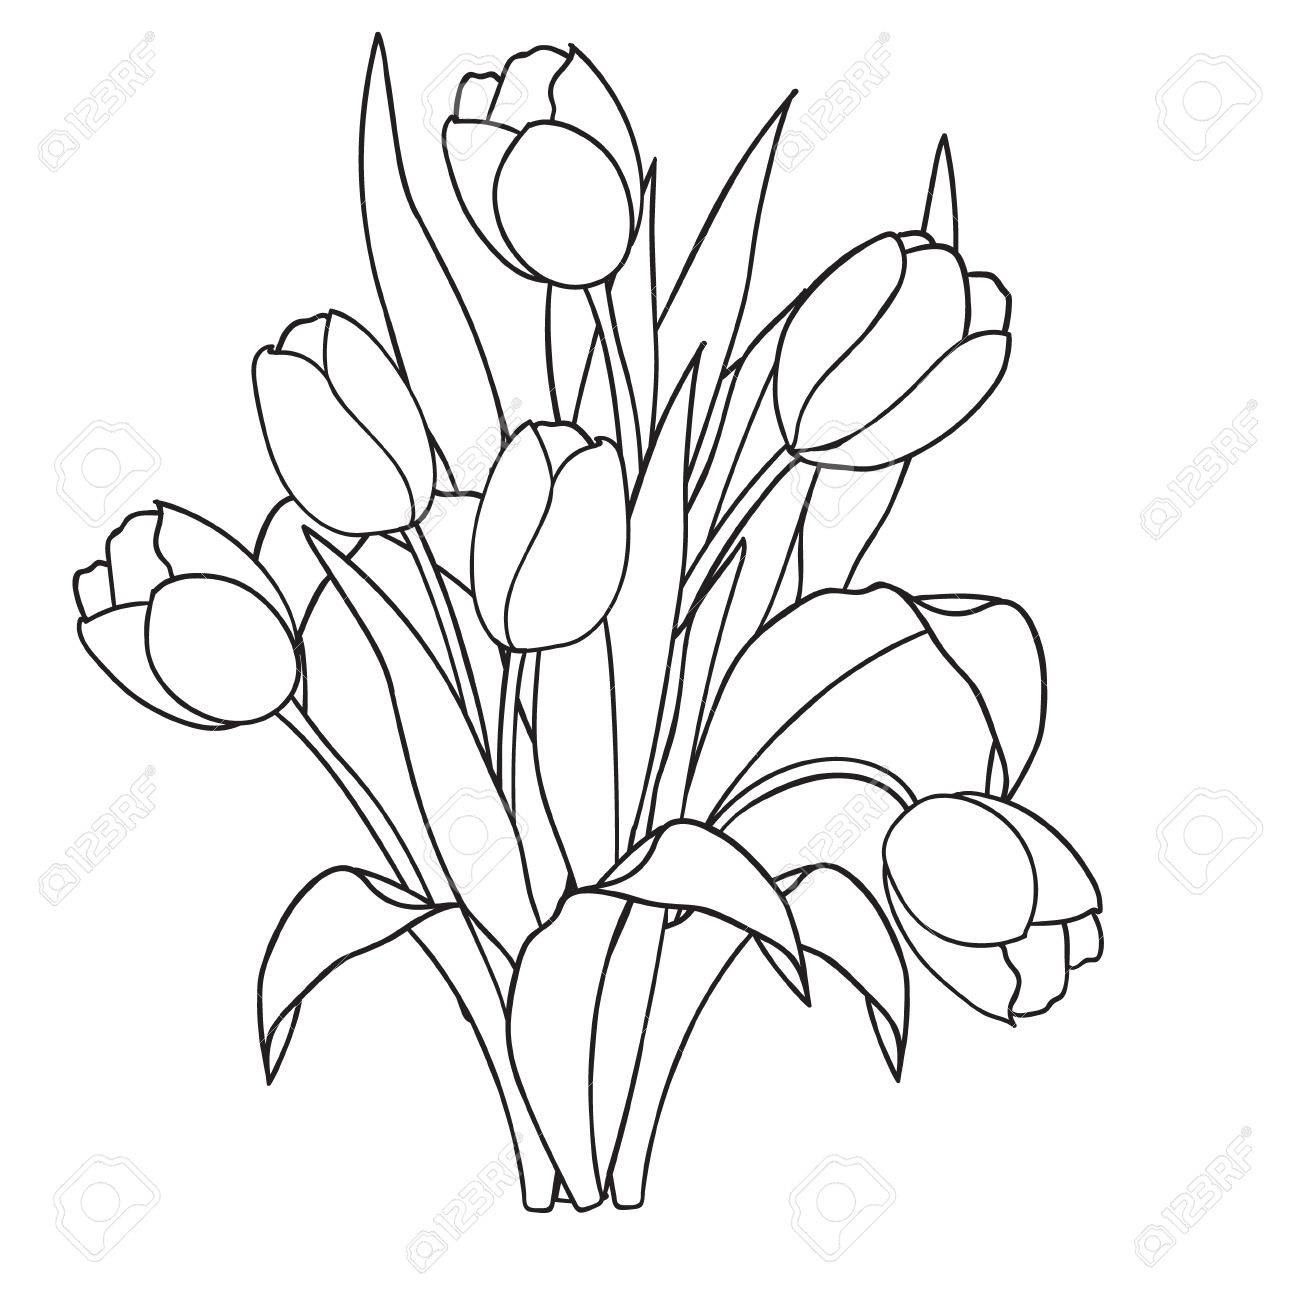 Tulips Flowers Ornamental Black And White Coloring Pages Vector Royalty Free Cliparts Vectors And Stock Illustration Image 56729813